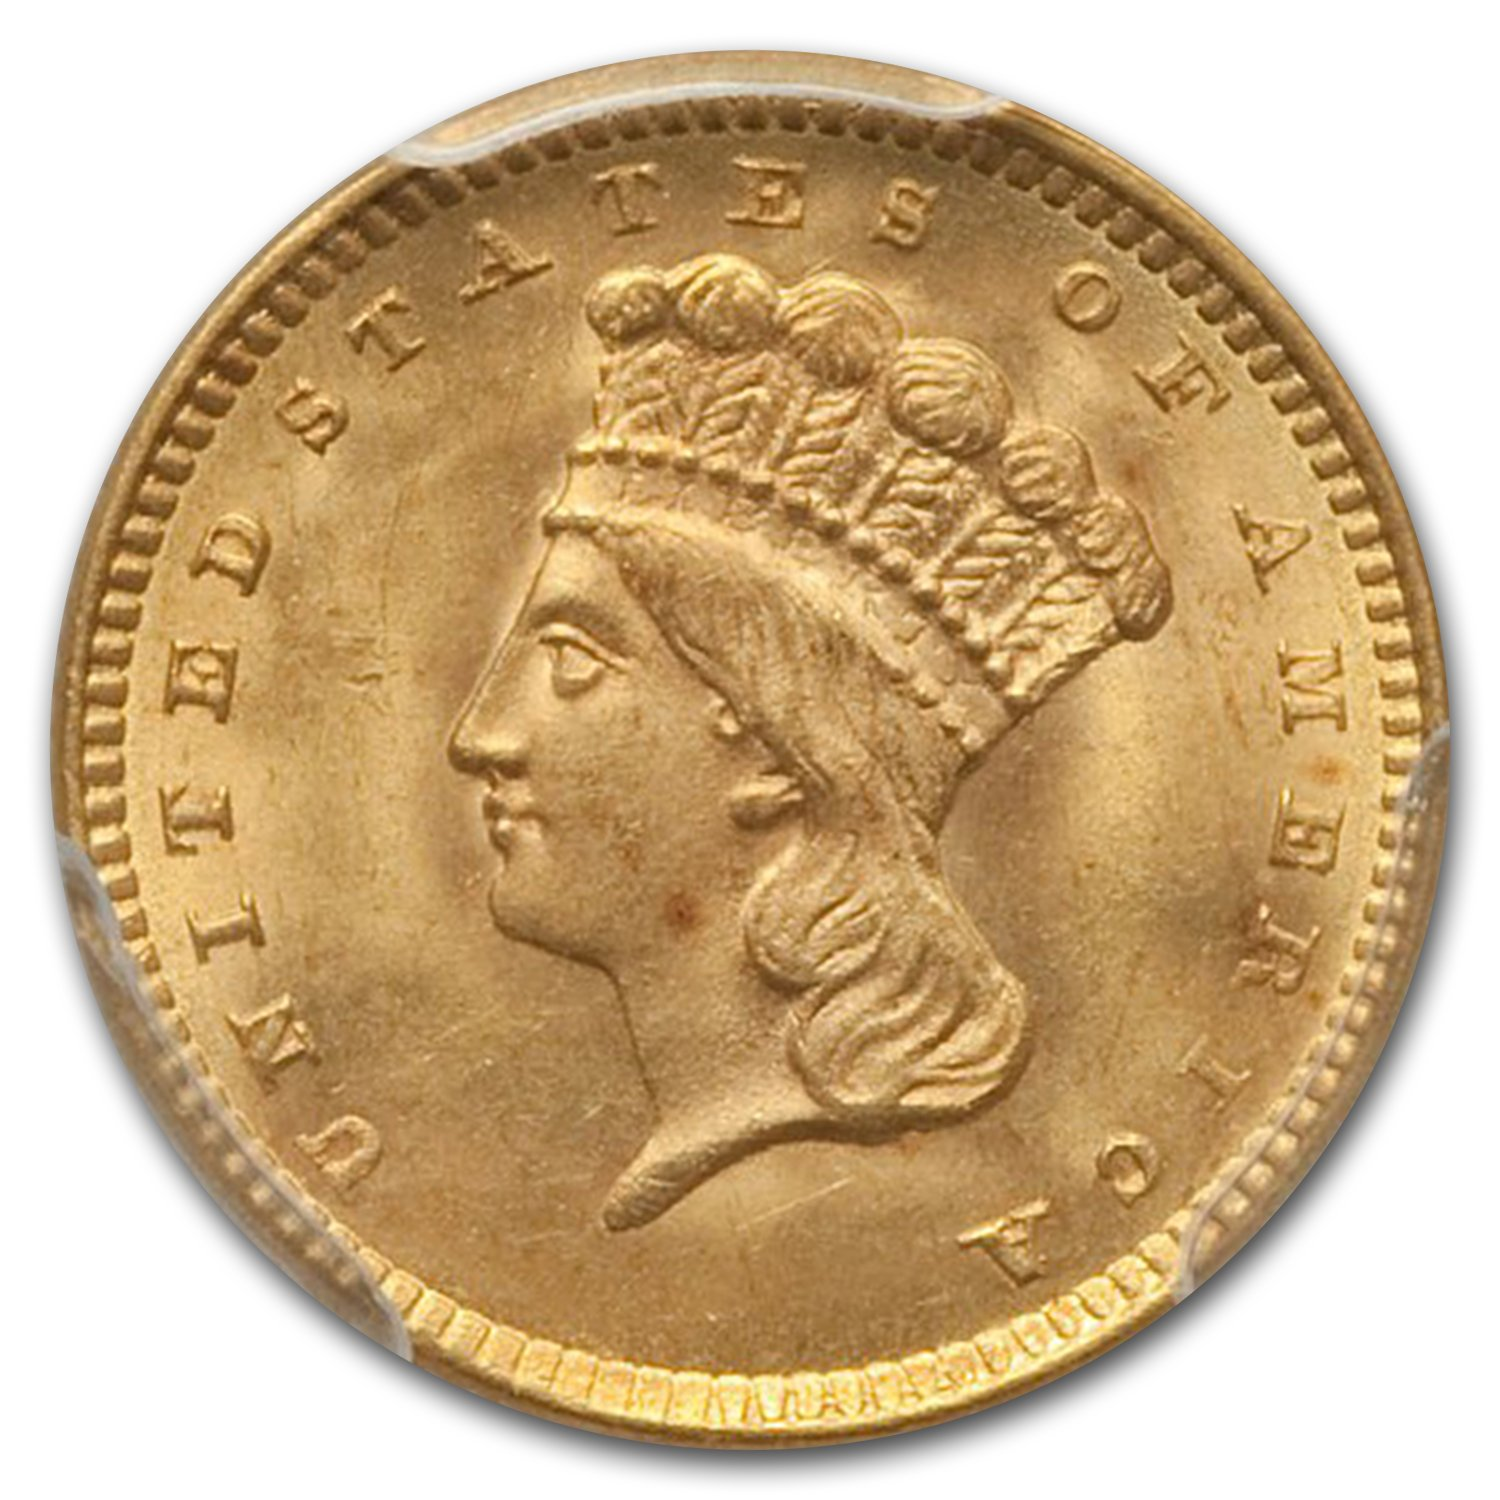 1856 $1.00 Indian Head Gold Type 3 MS-65 PCGS (Slanted 5)